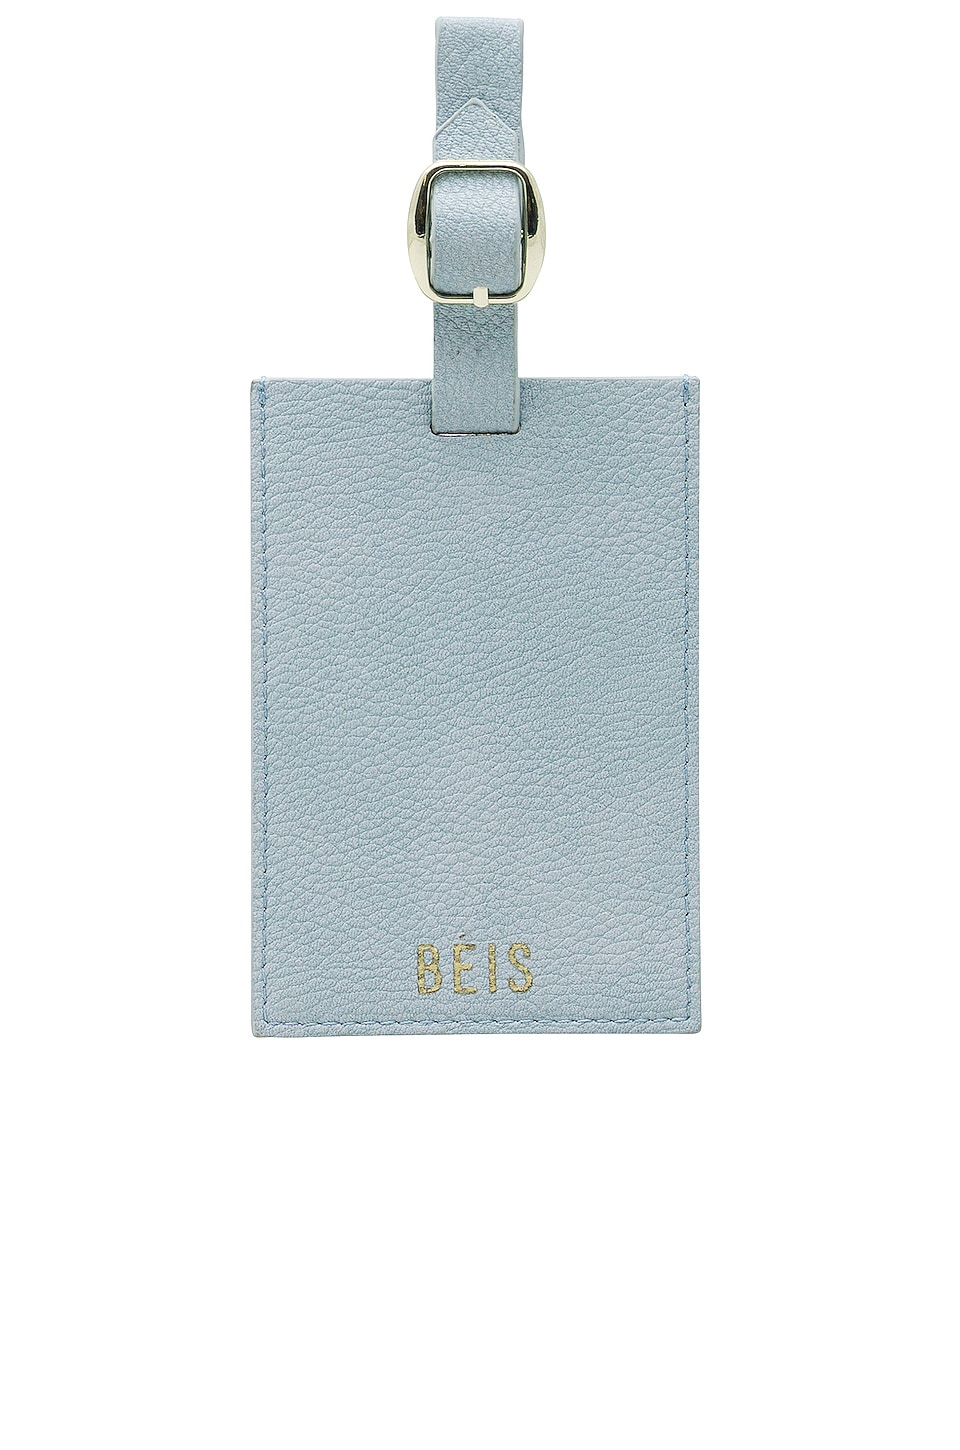 BEIS The Luggage Tag in Light Blue